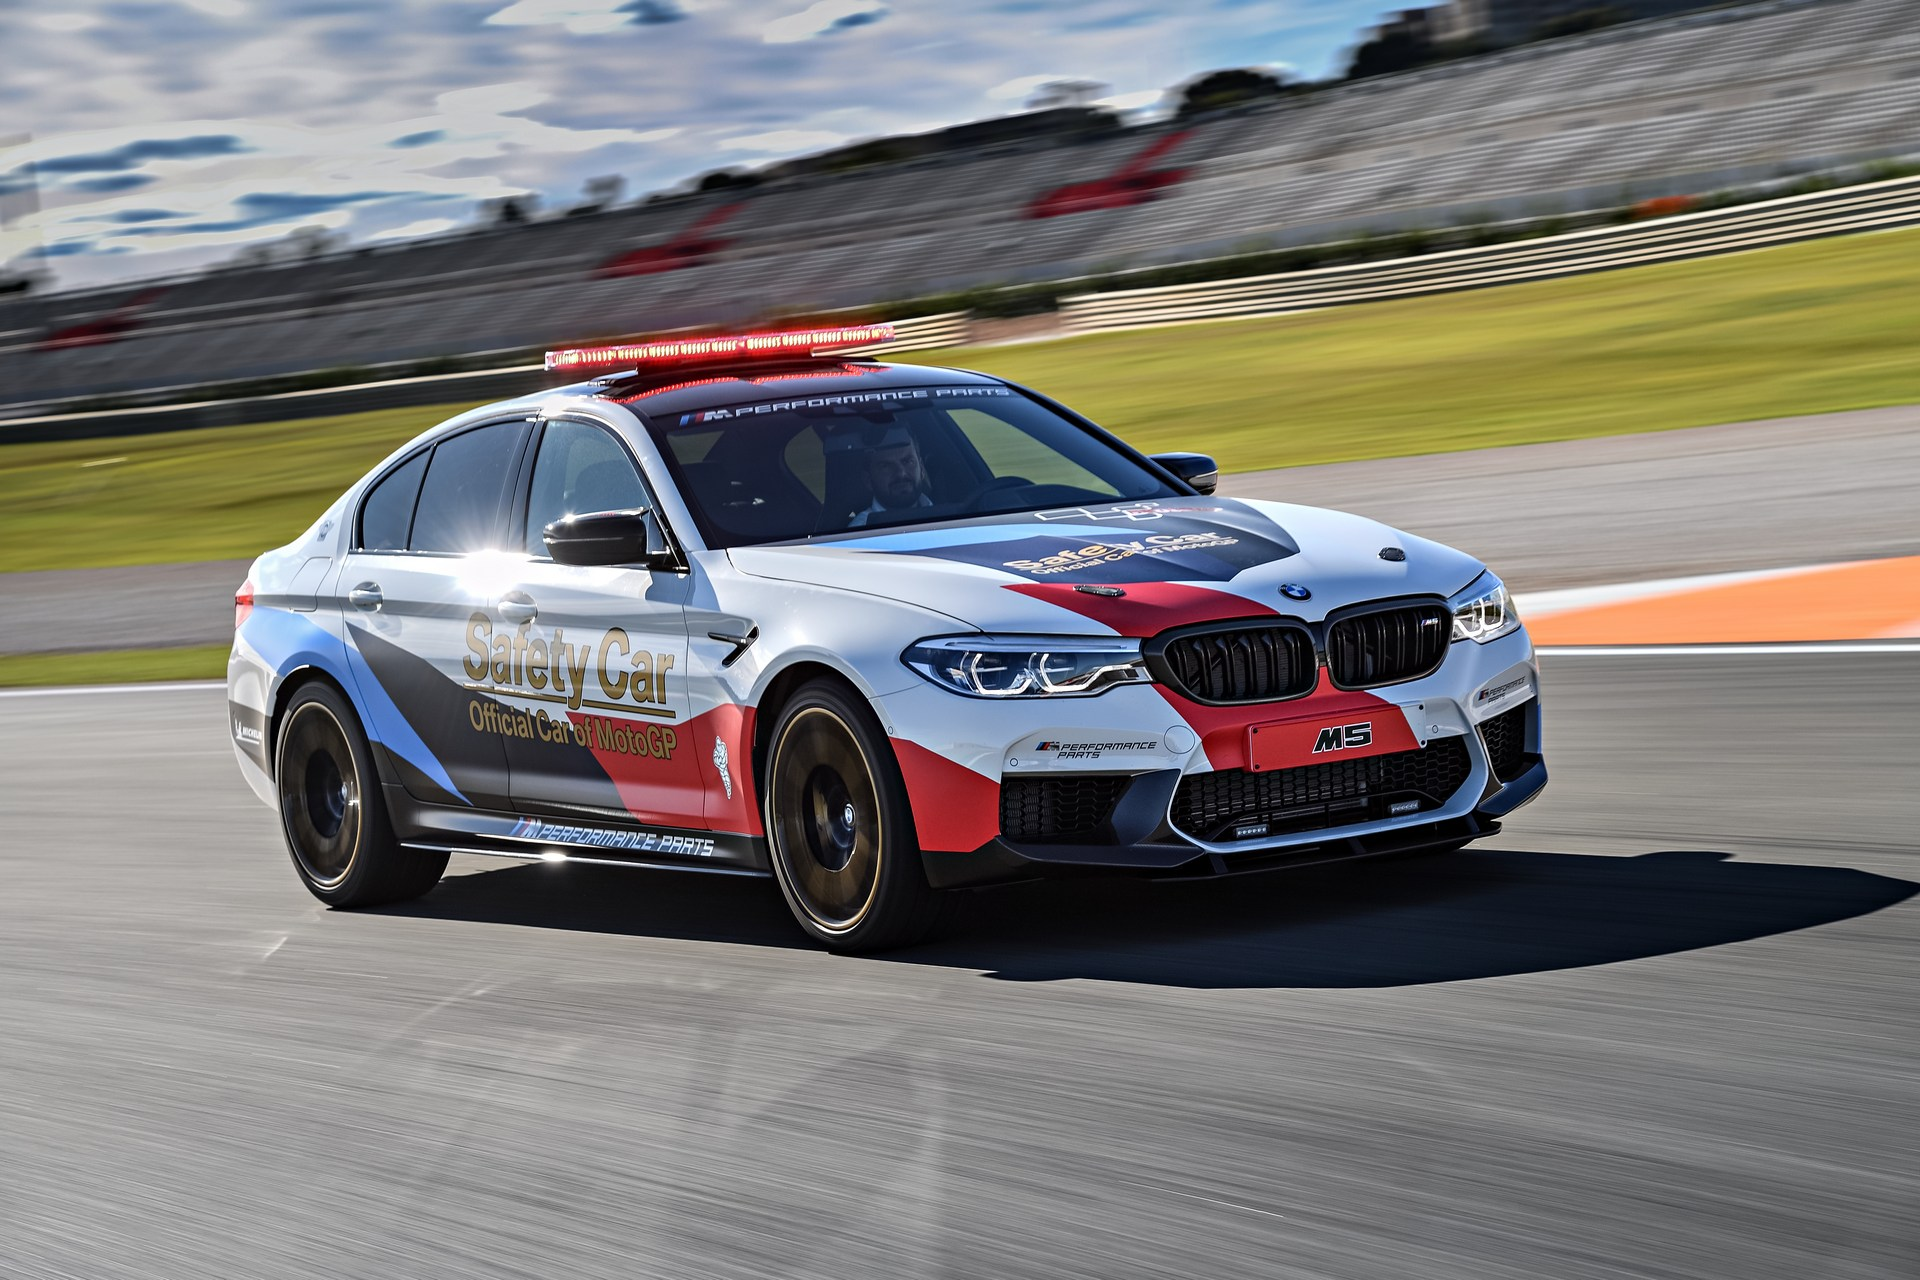 BMW_M5_Safety_Car_0004